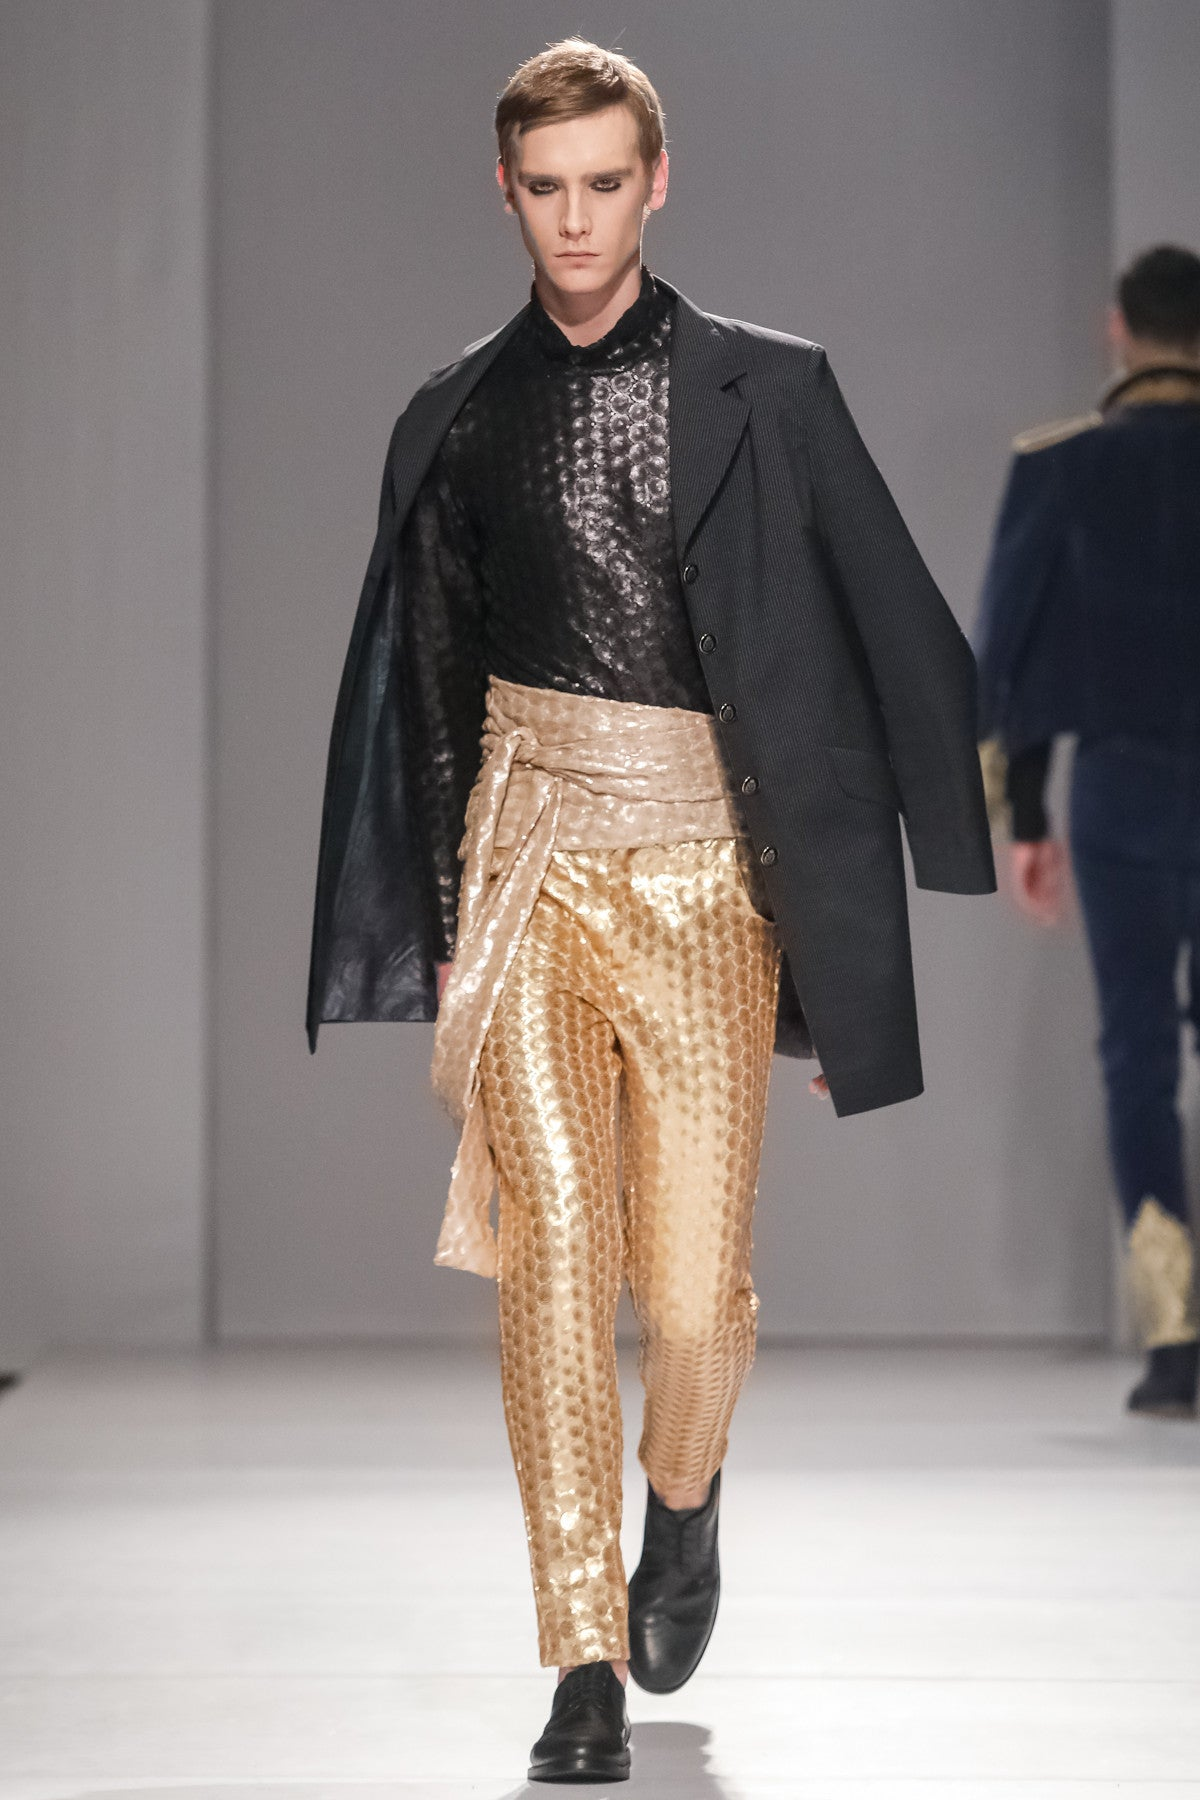 GOLD SEQUIN TROUSERS